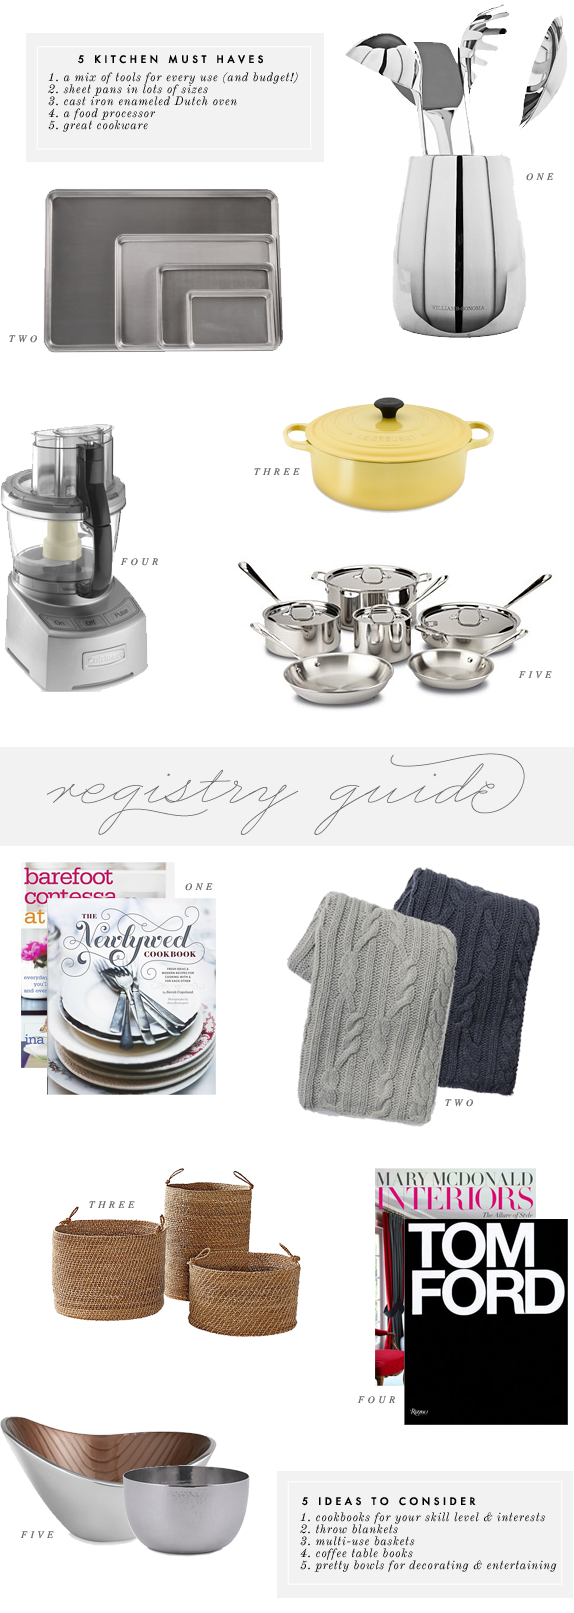 registry ideas | via vmac+cheese